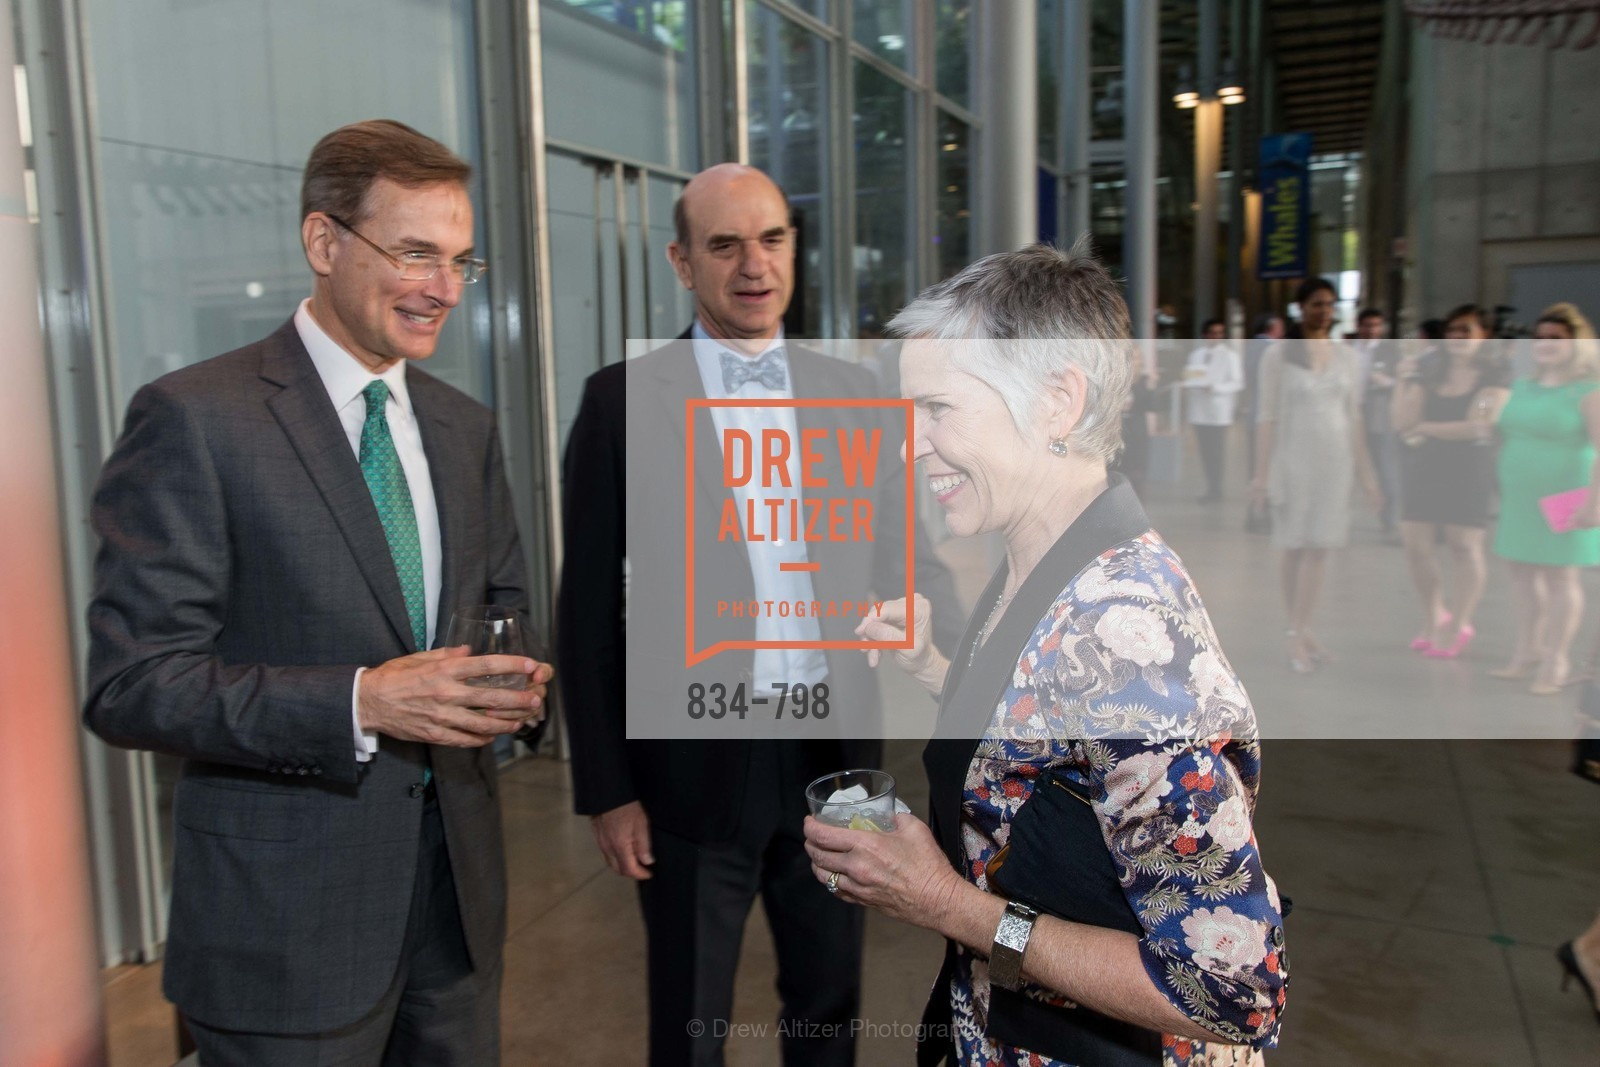 John Atwater, Bob Fisher, Laura Lazarus, CALIFORNIA ACADEMY OF SCIENCES - Big Bang Gala 2015, US, April 23rd, 2015,Drew Altizer, Drew Altizer Photography, full-service agency, private events, San Francisco photographer, photographer california